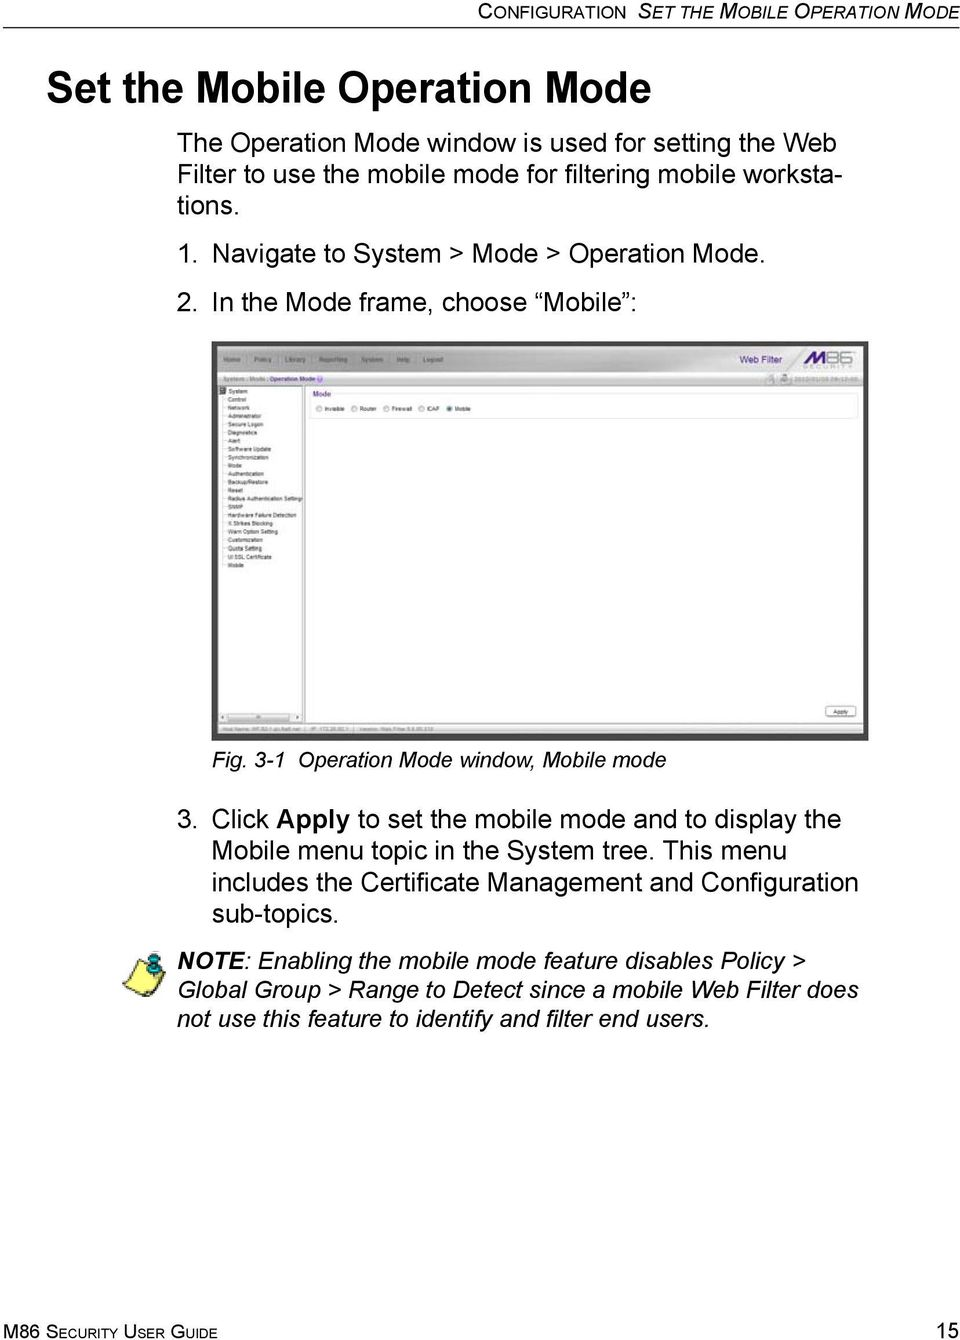 Click Apply to set the mobile mode and to display the Mobile menu topic in the System tree. This menu includes the Certificate Management and Configuration sub-topics.